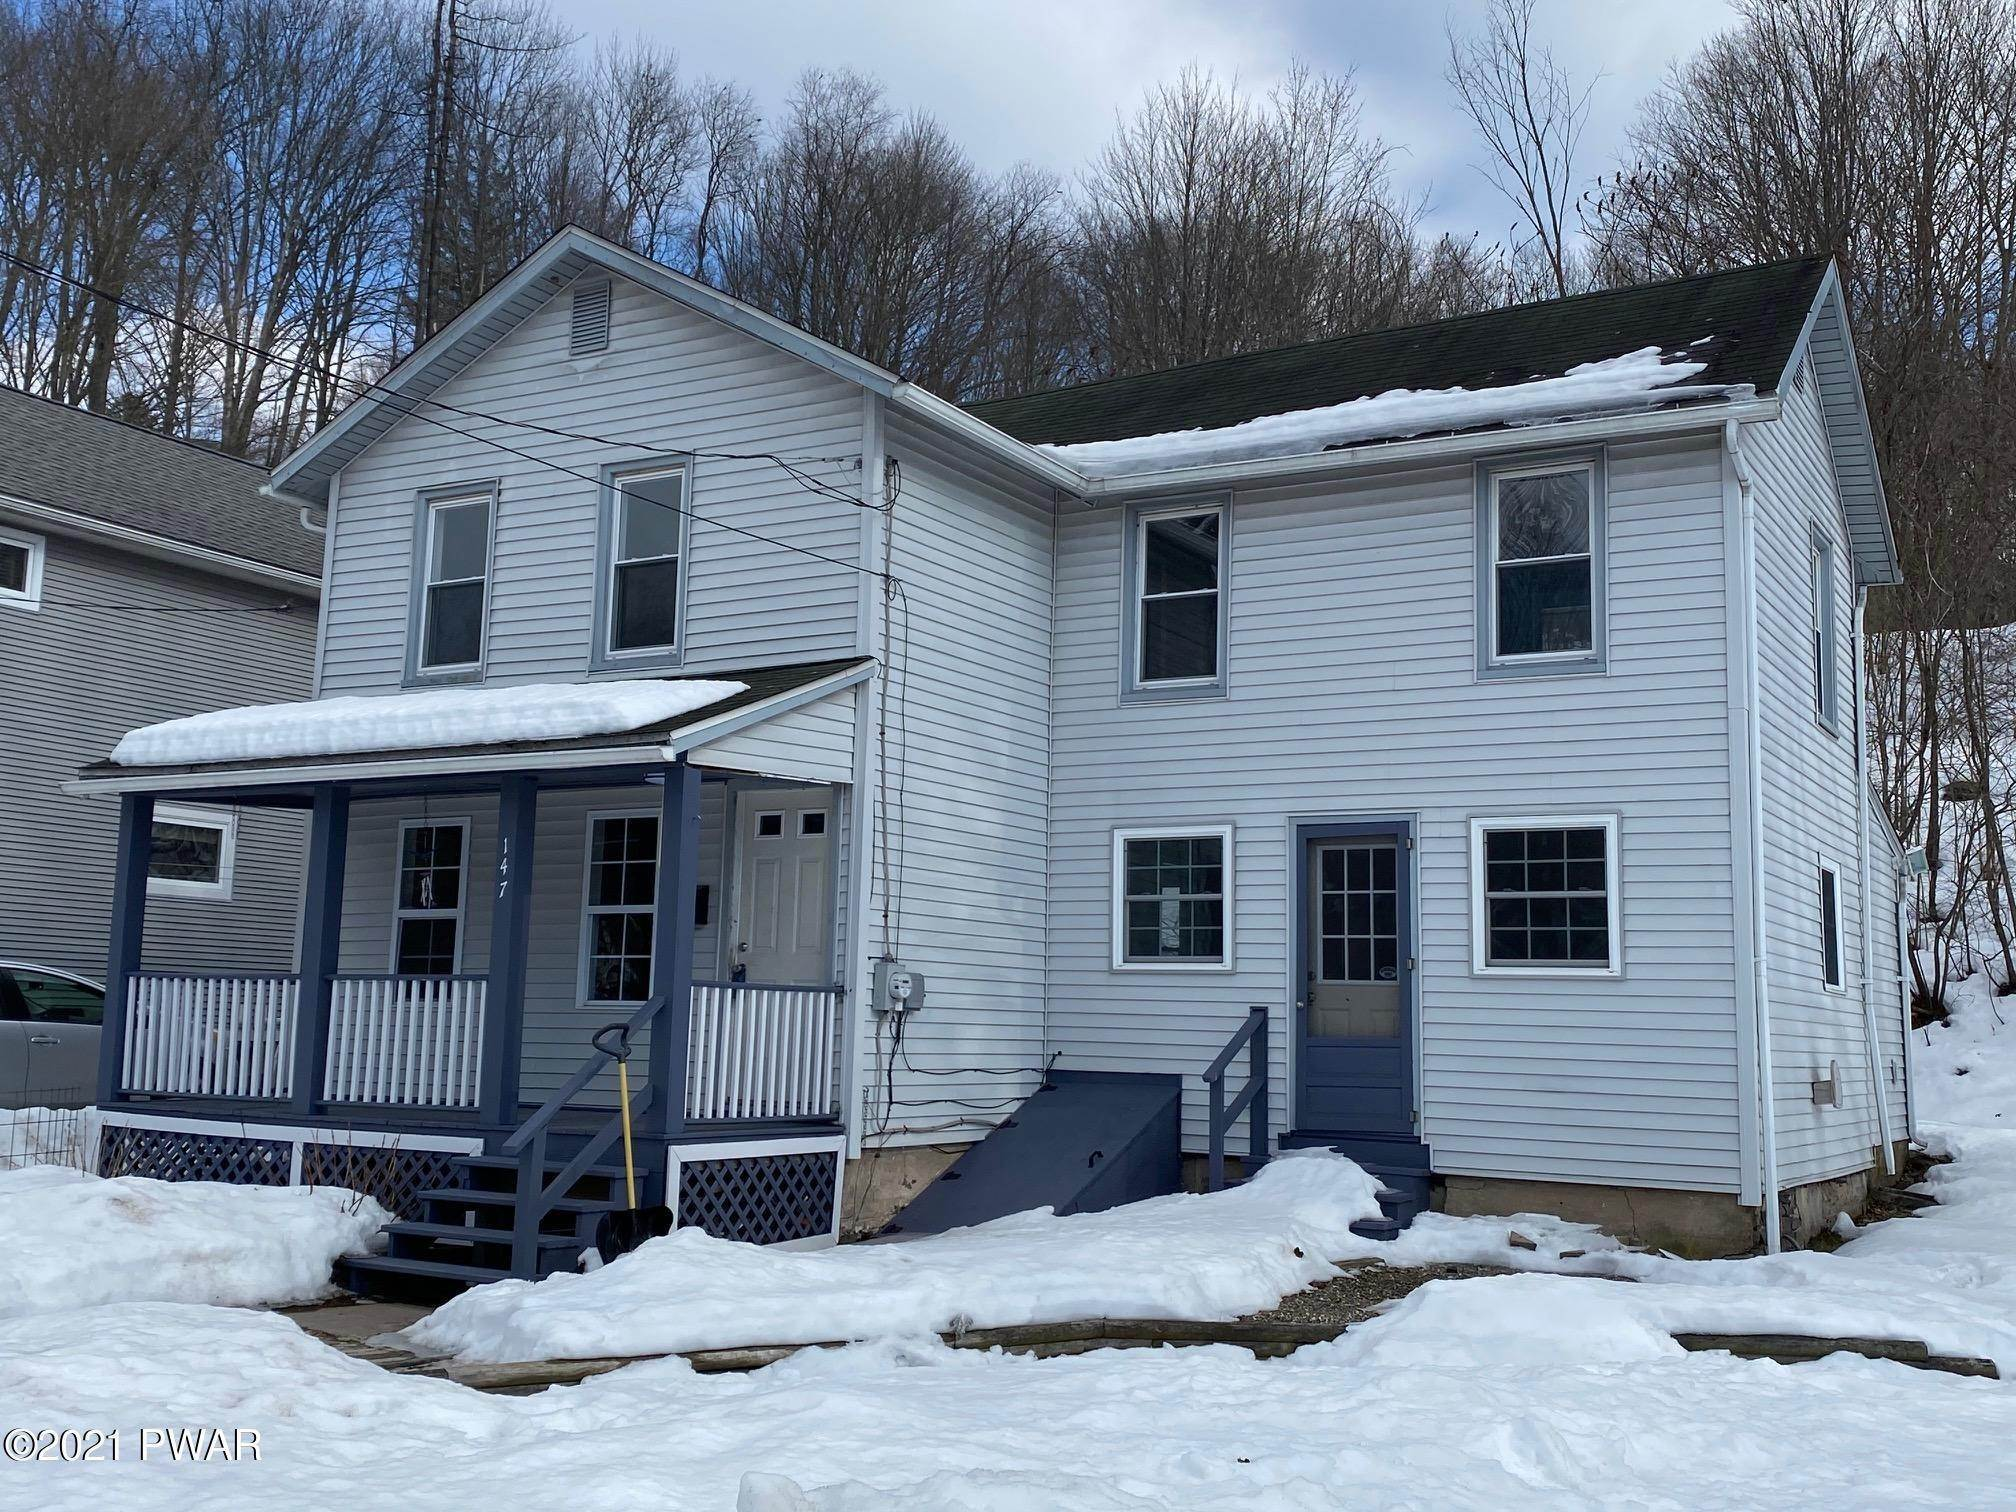 Property for Sale at 147 E Tryon St Honesdale, Pennsylvania 18431 United States